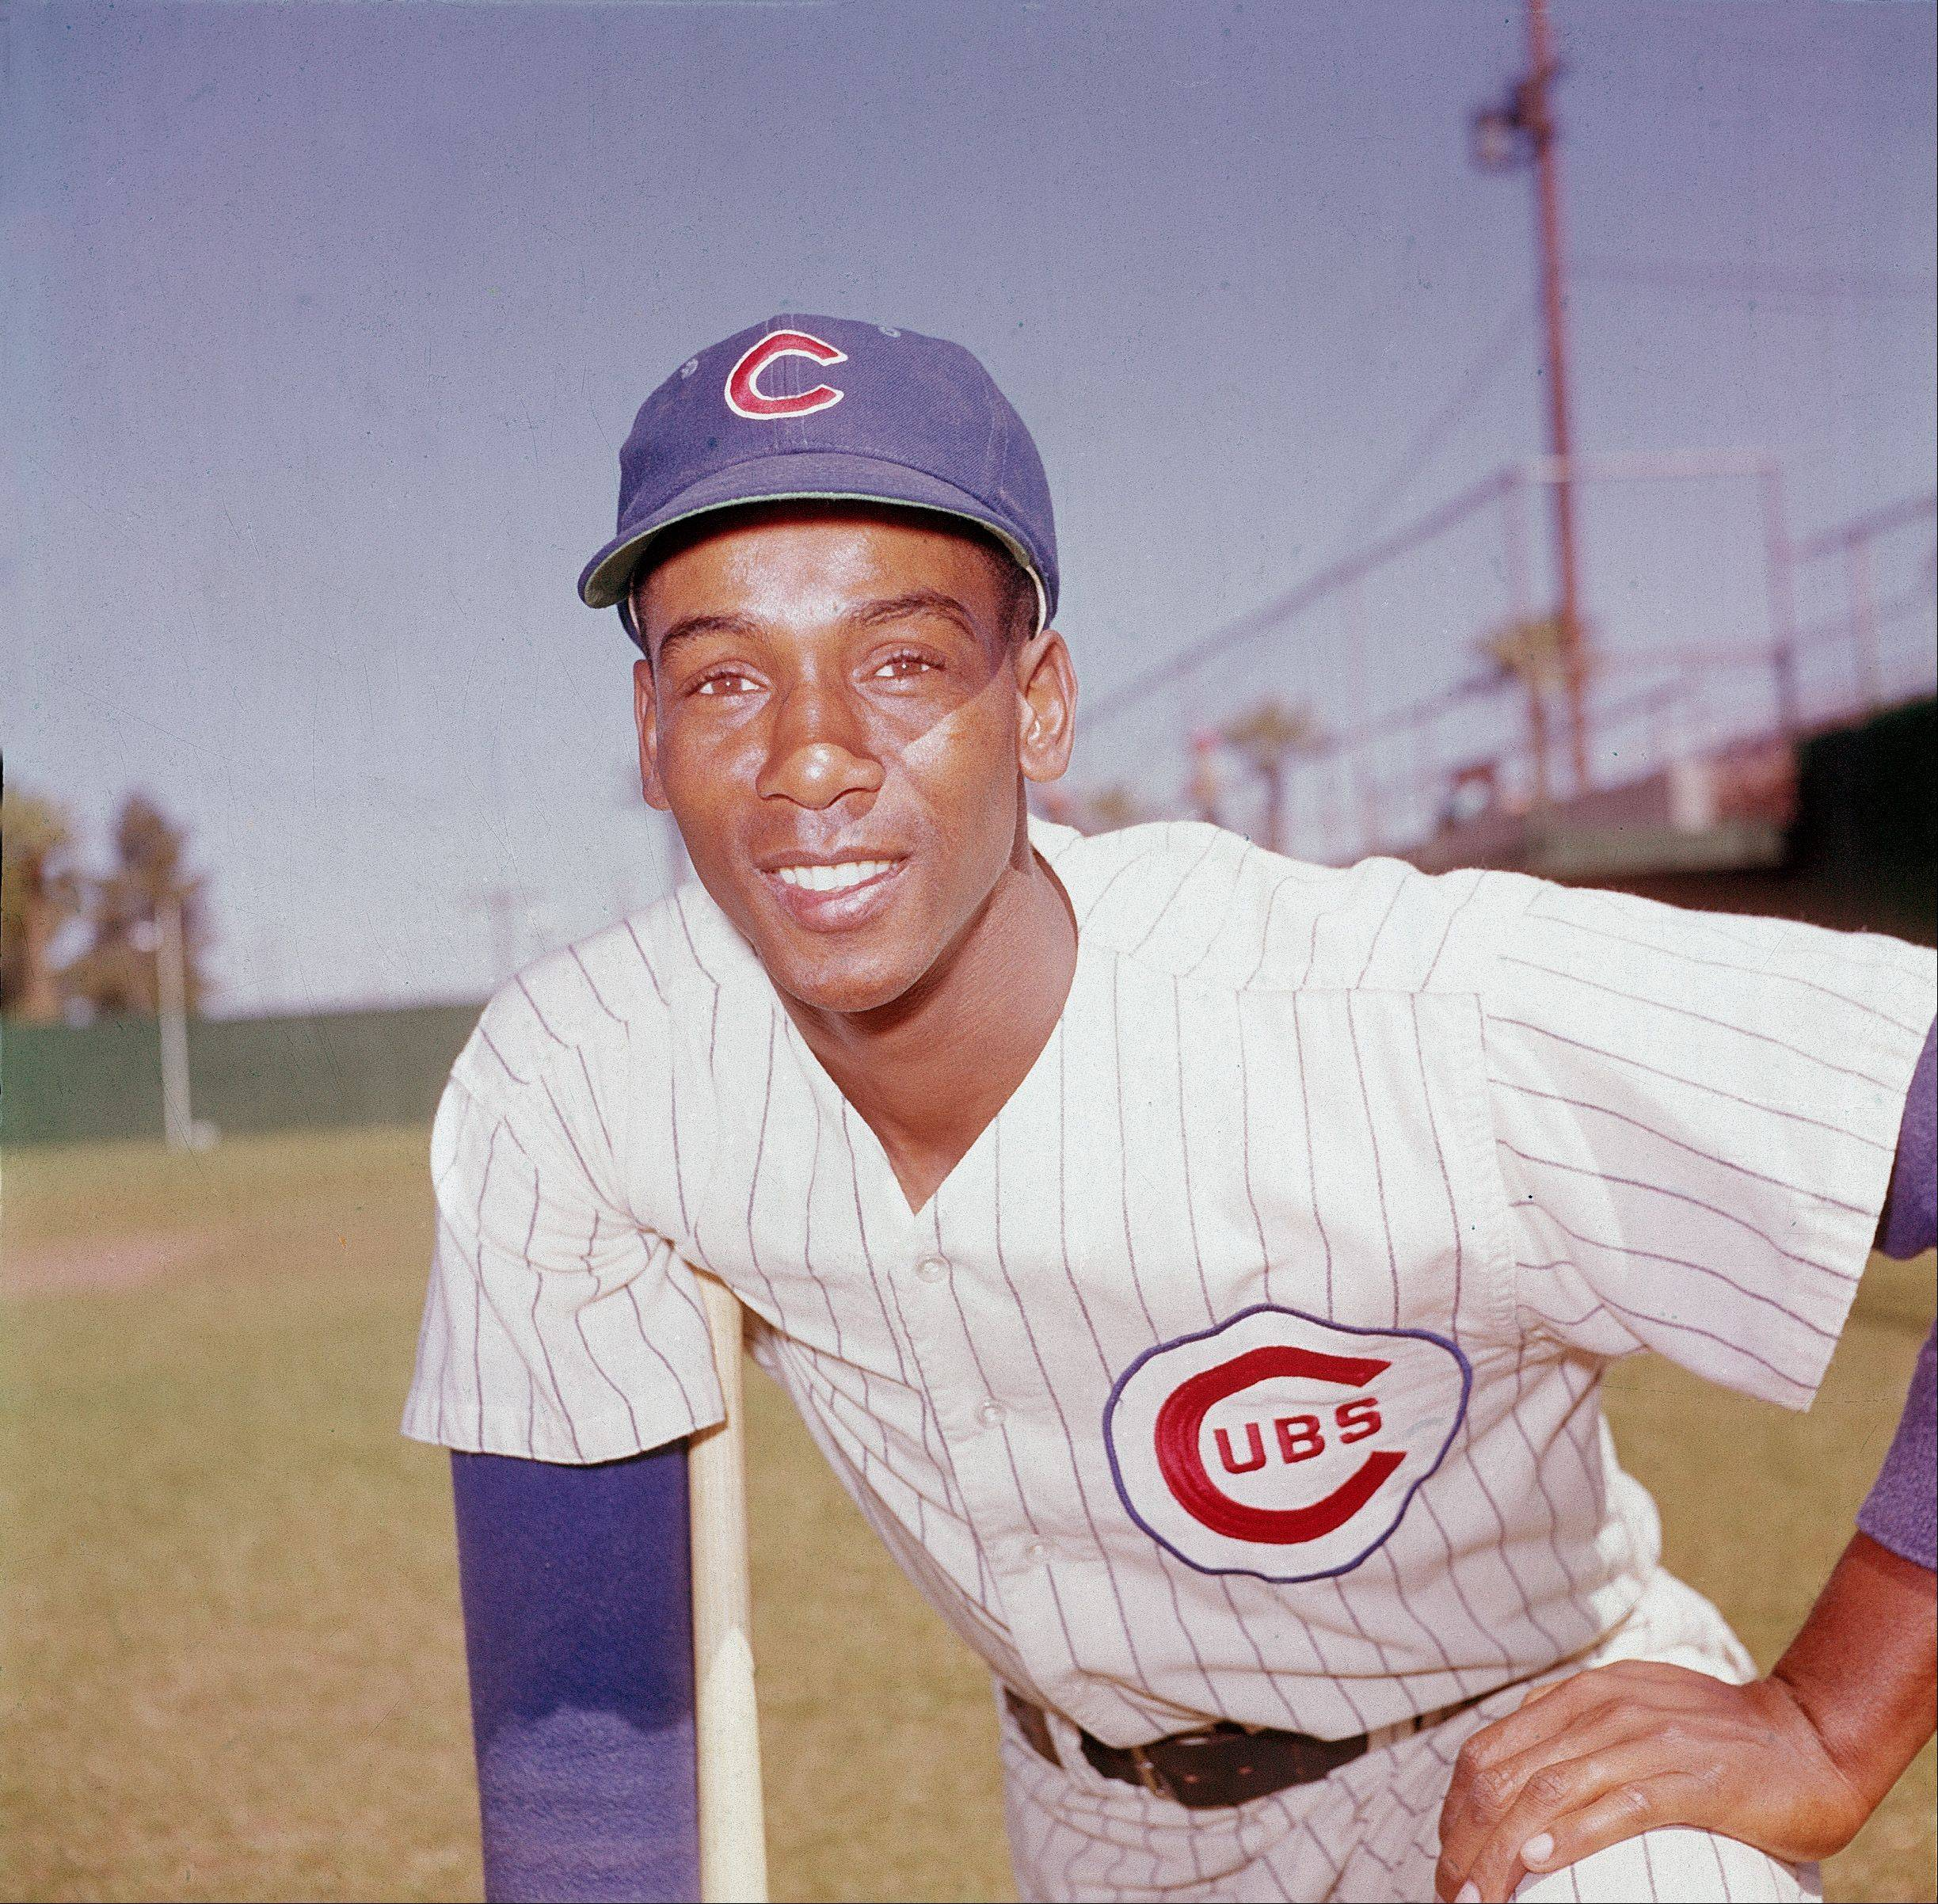 Ernie Banks, infielder for the Chicago Cubs, poses in 1970.